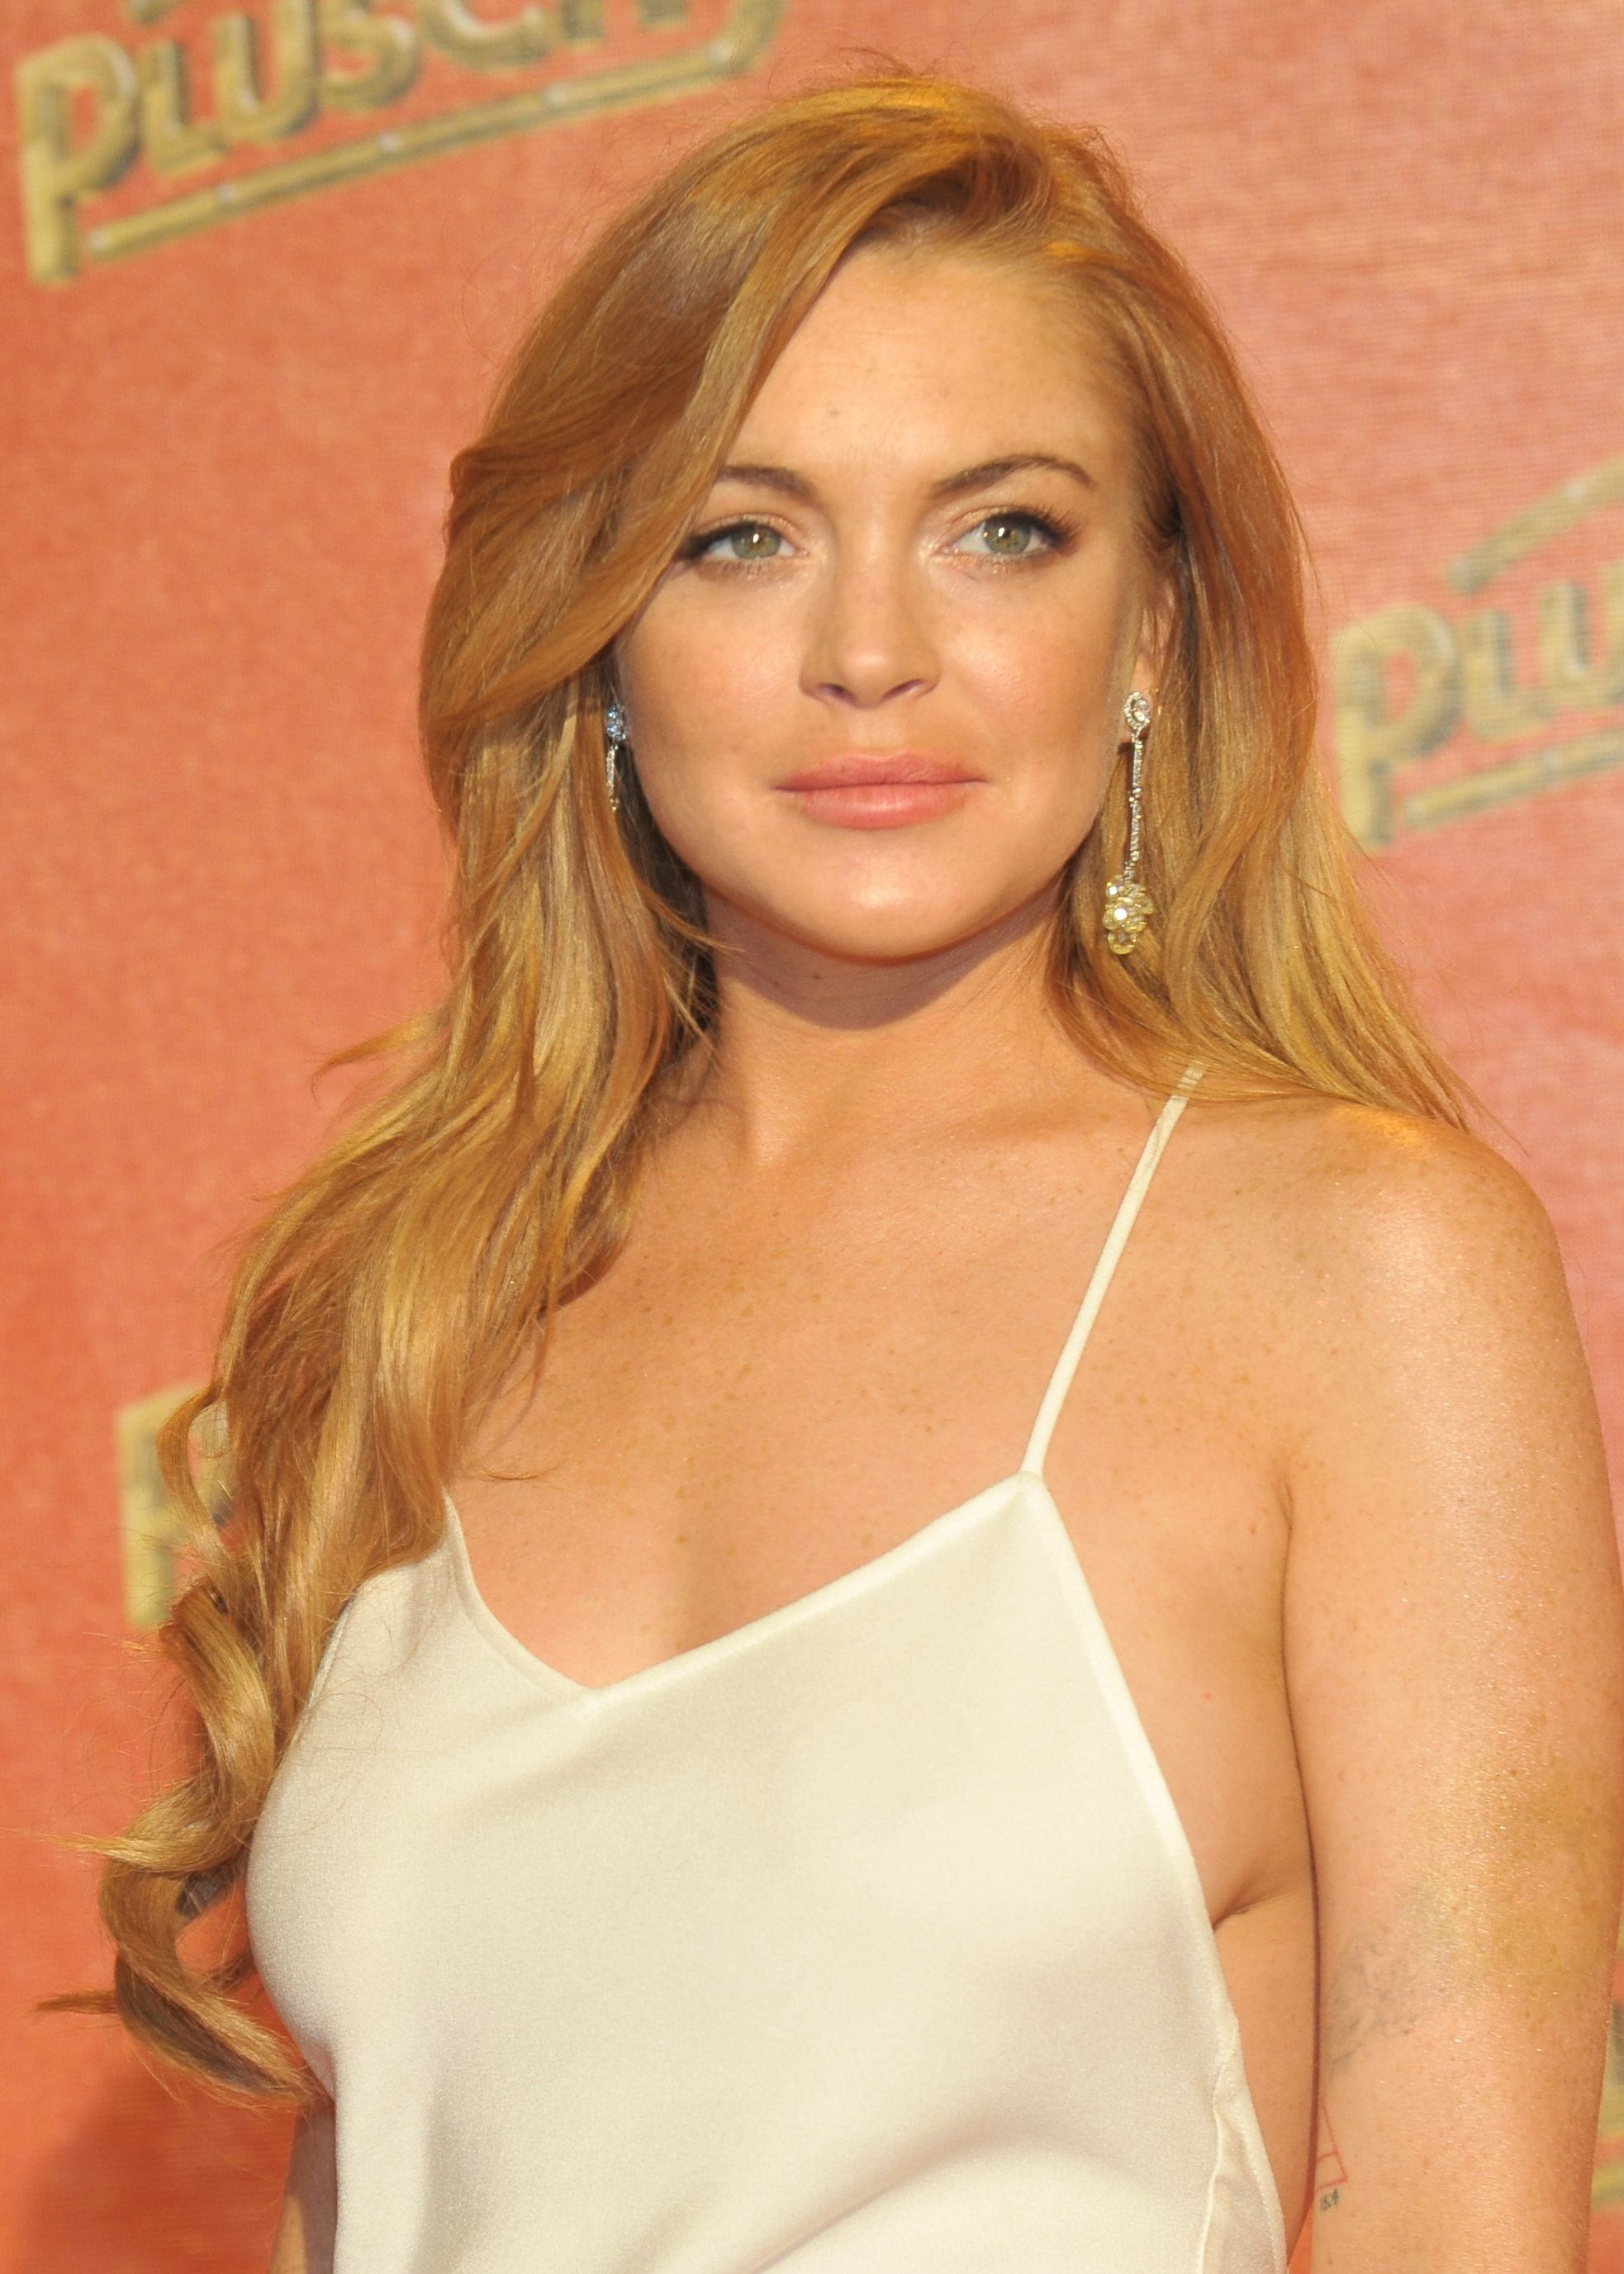 Lindsay Lohan - Strawberry blonde hair - side part with curls